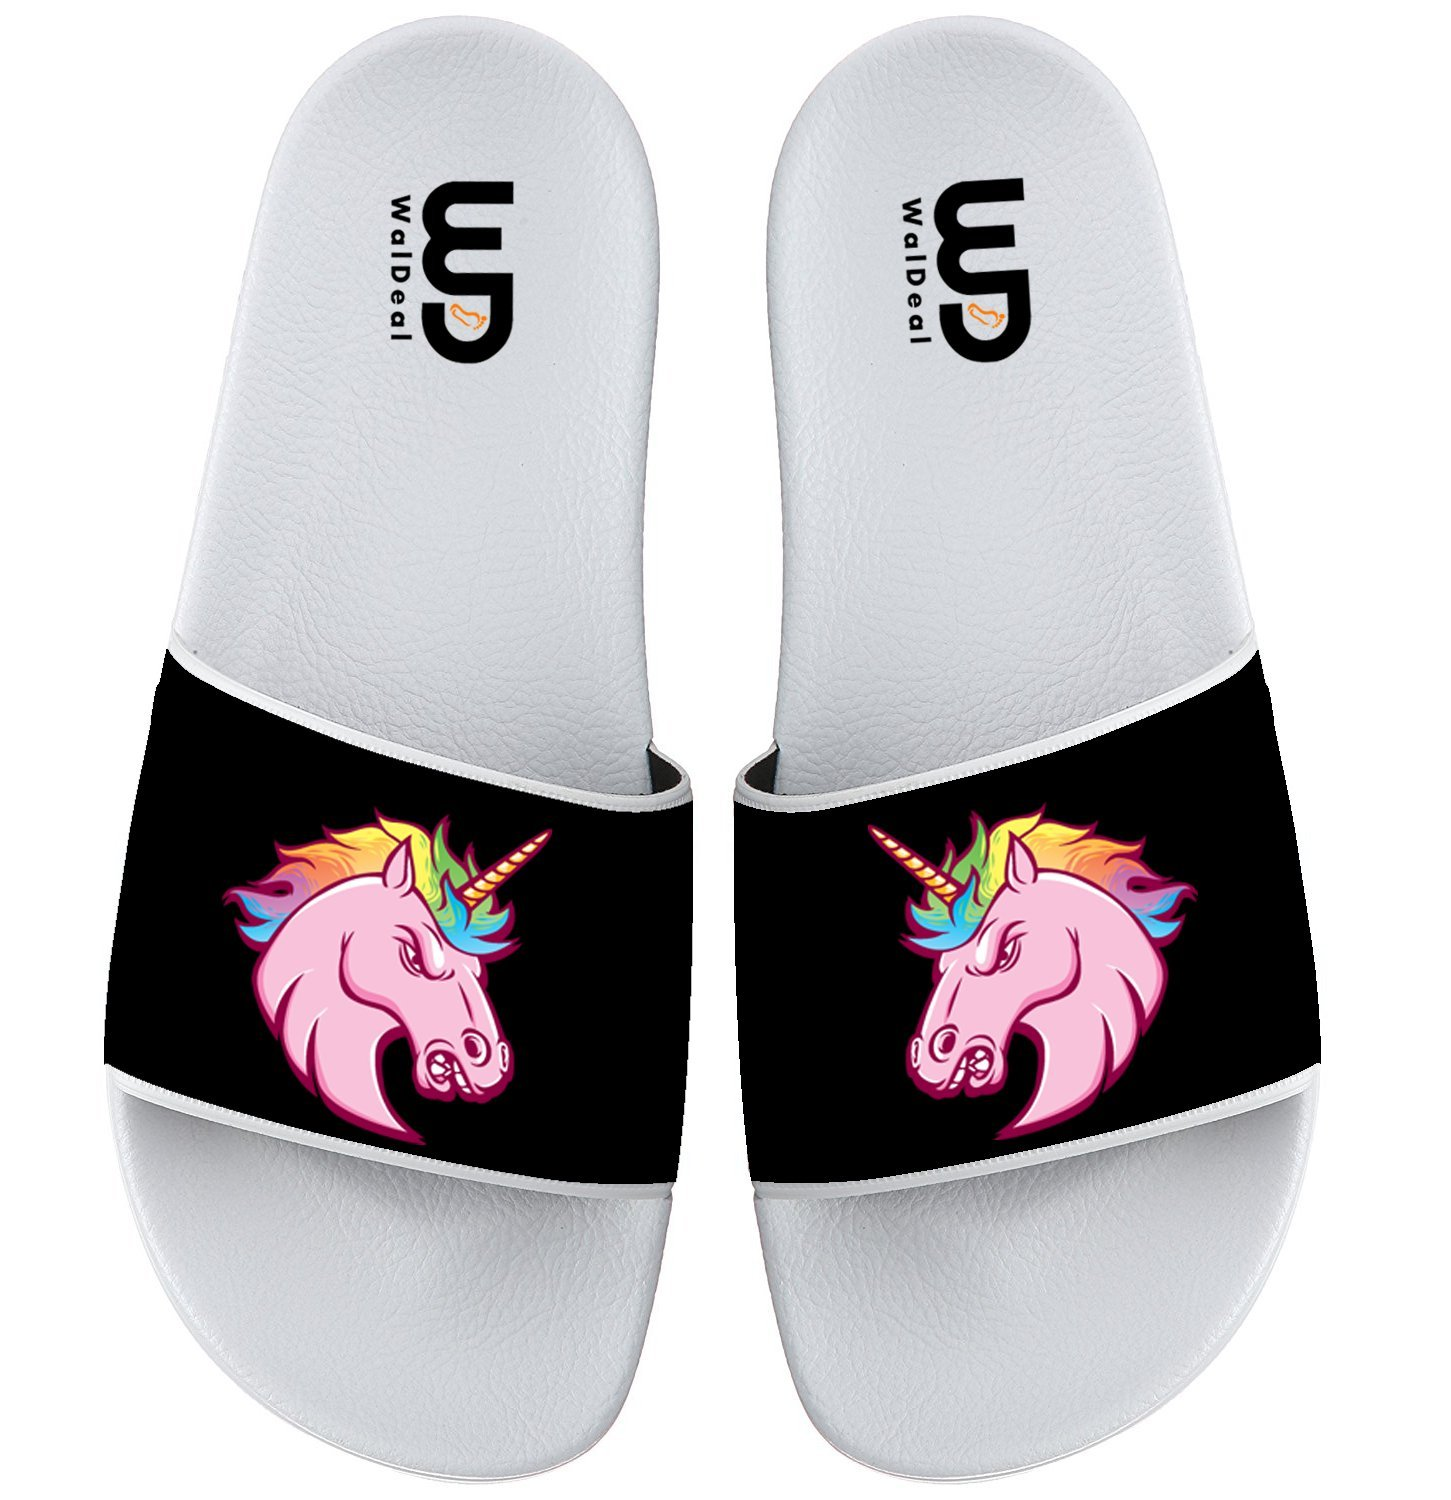 Unicorn With Rainbows And Clouds Summer Non-slip Slide Sandals Home Shoes Beach Swim Flip Flops Indoor and Outdoor Slipper Women Men B075P49YSV 7 B(M) US|Unicorn